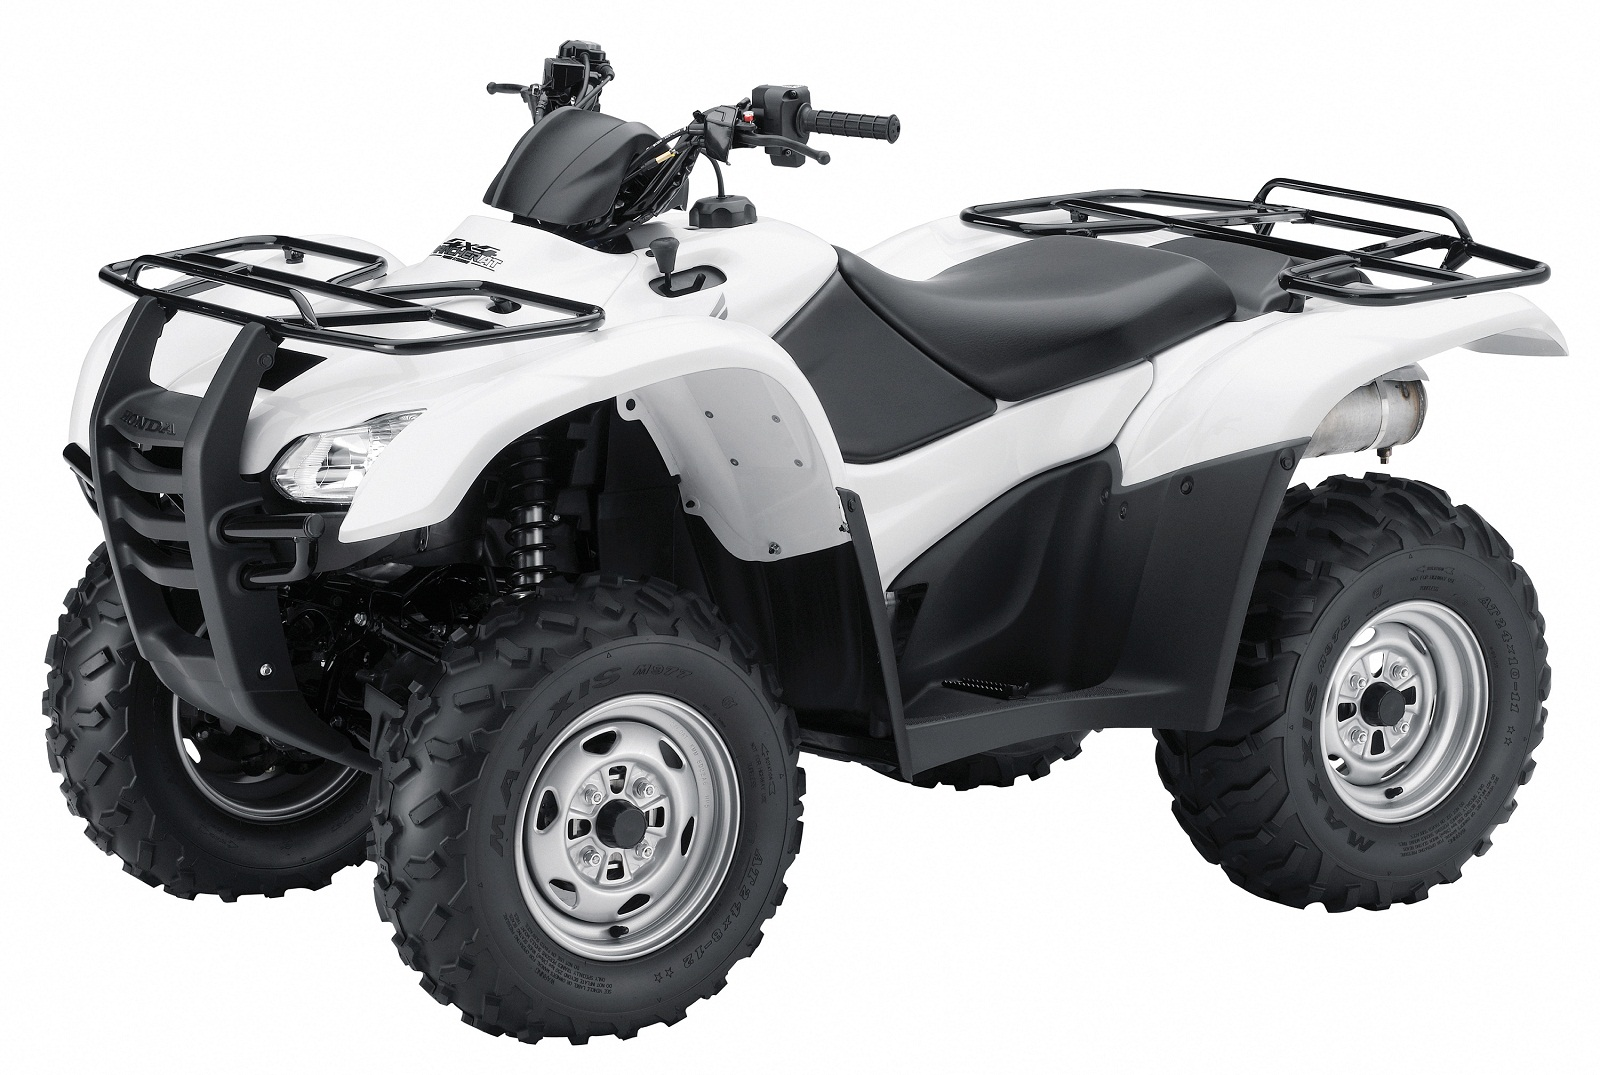 2012 Honda FourTrax Rancher AT With Electric Power Steering | Top Speed. »